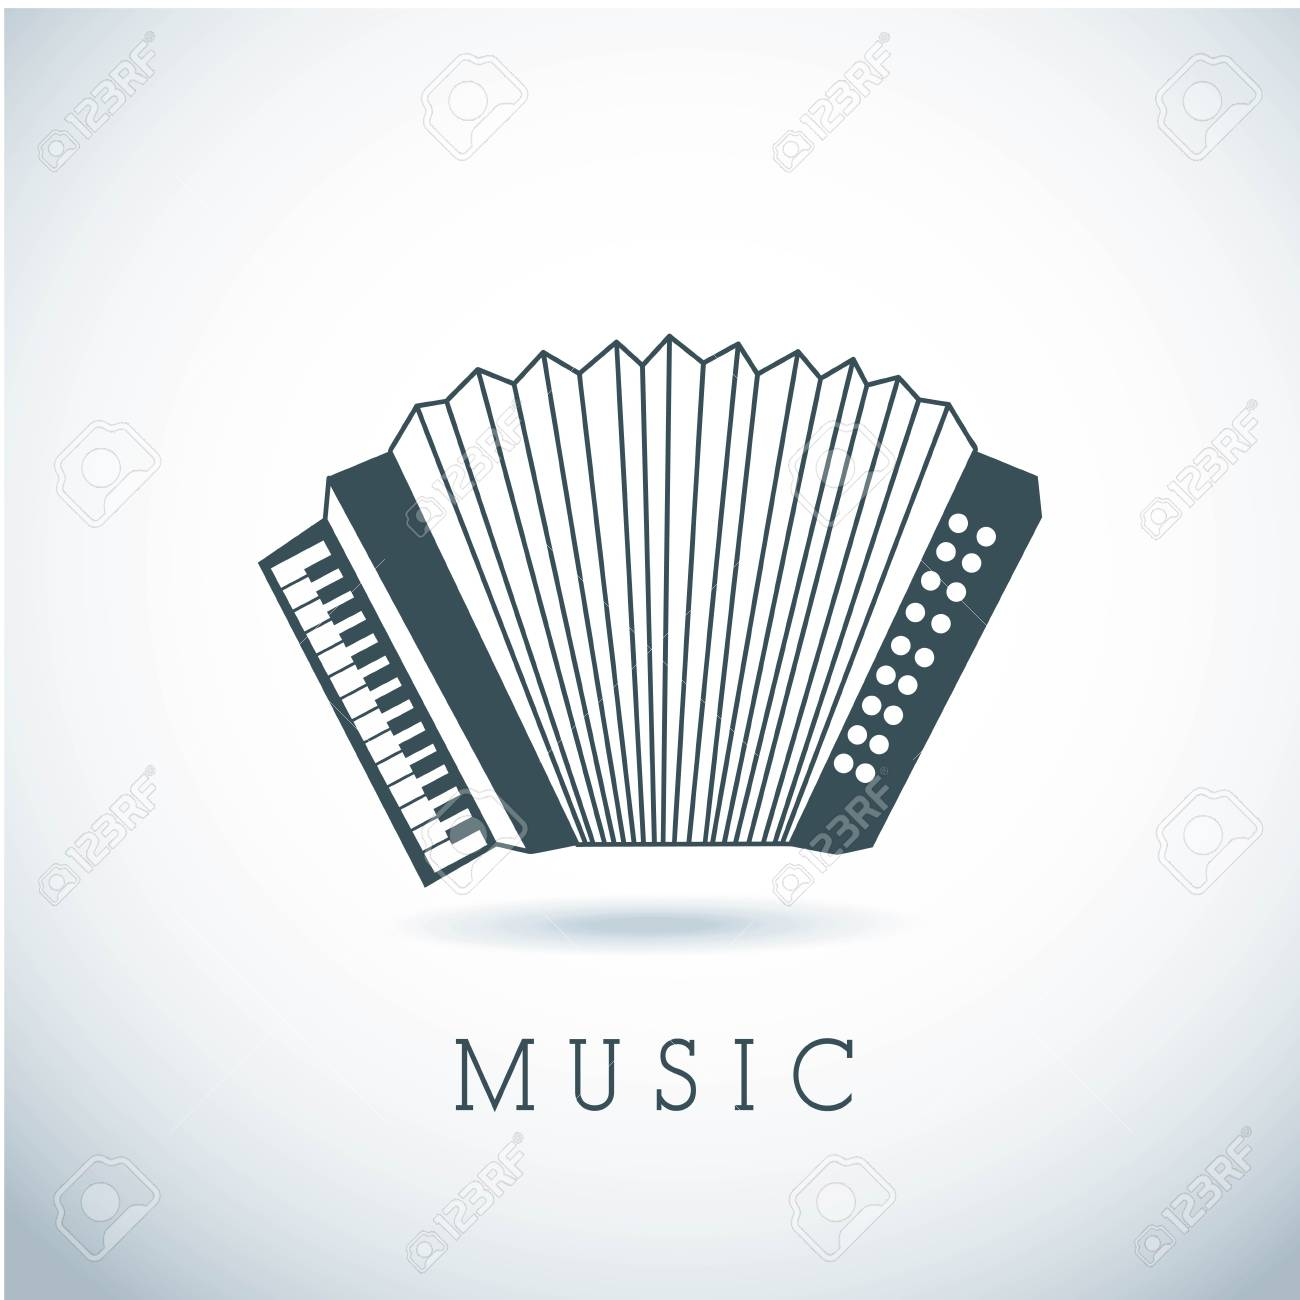 musical design over gray background vector illustration Stock Vector - 24070489